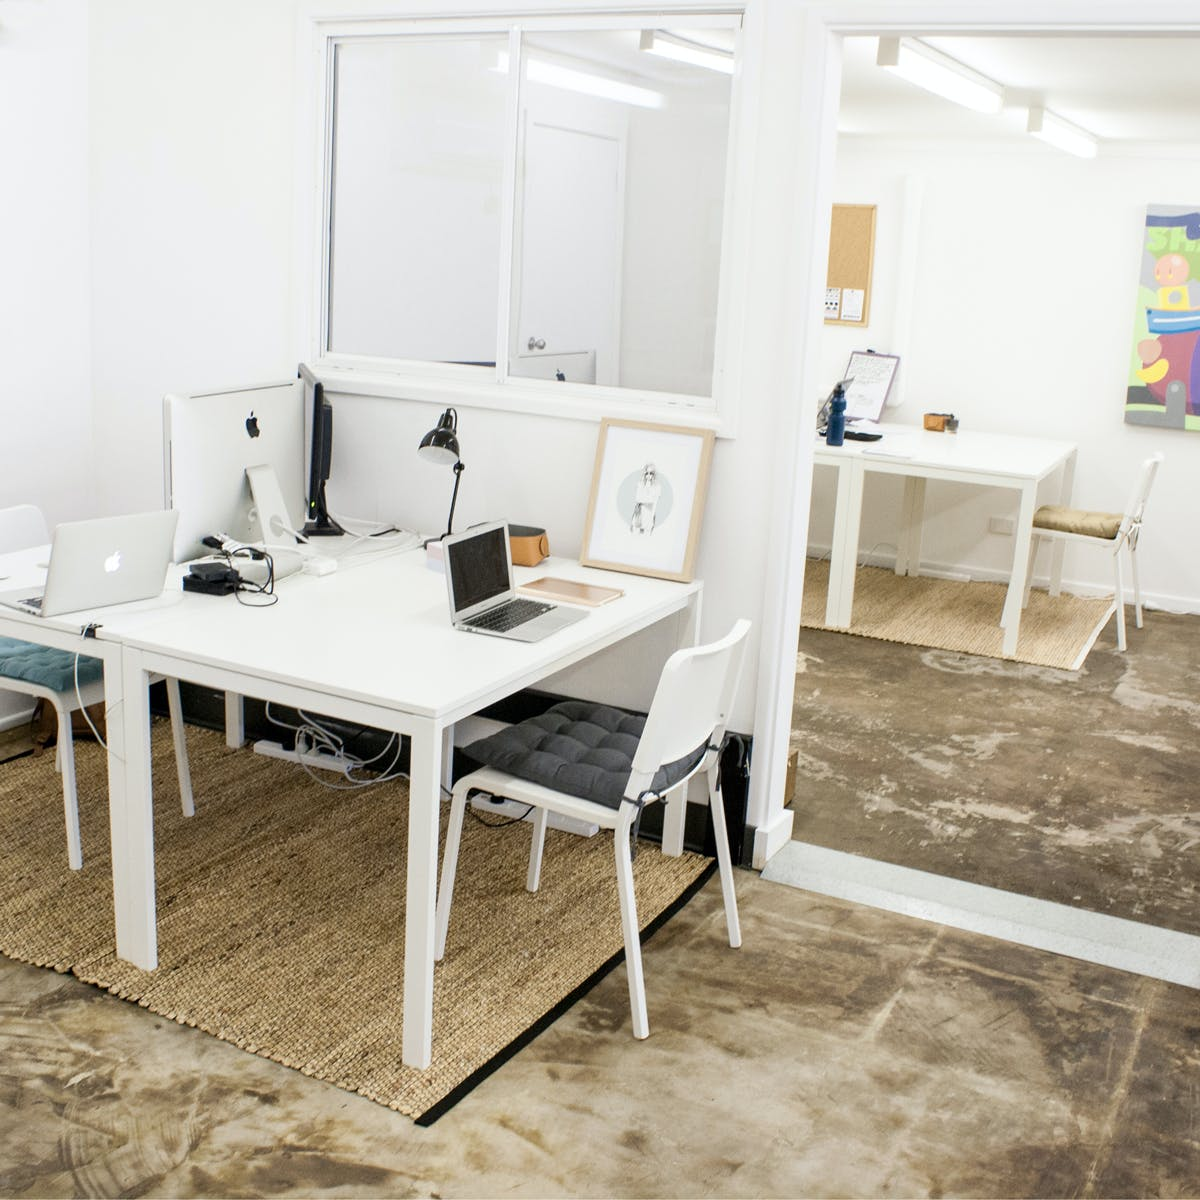 Dedicated desk at Common Collective, image 1